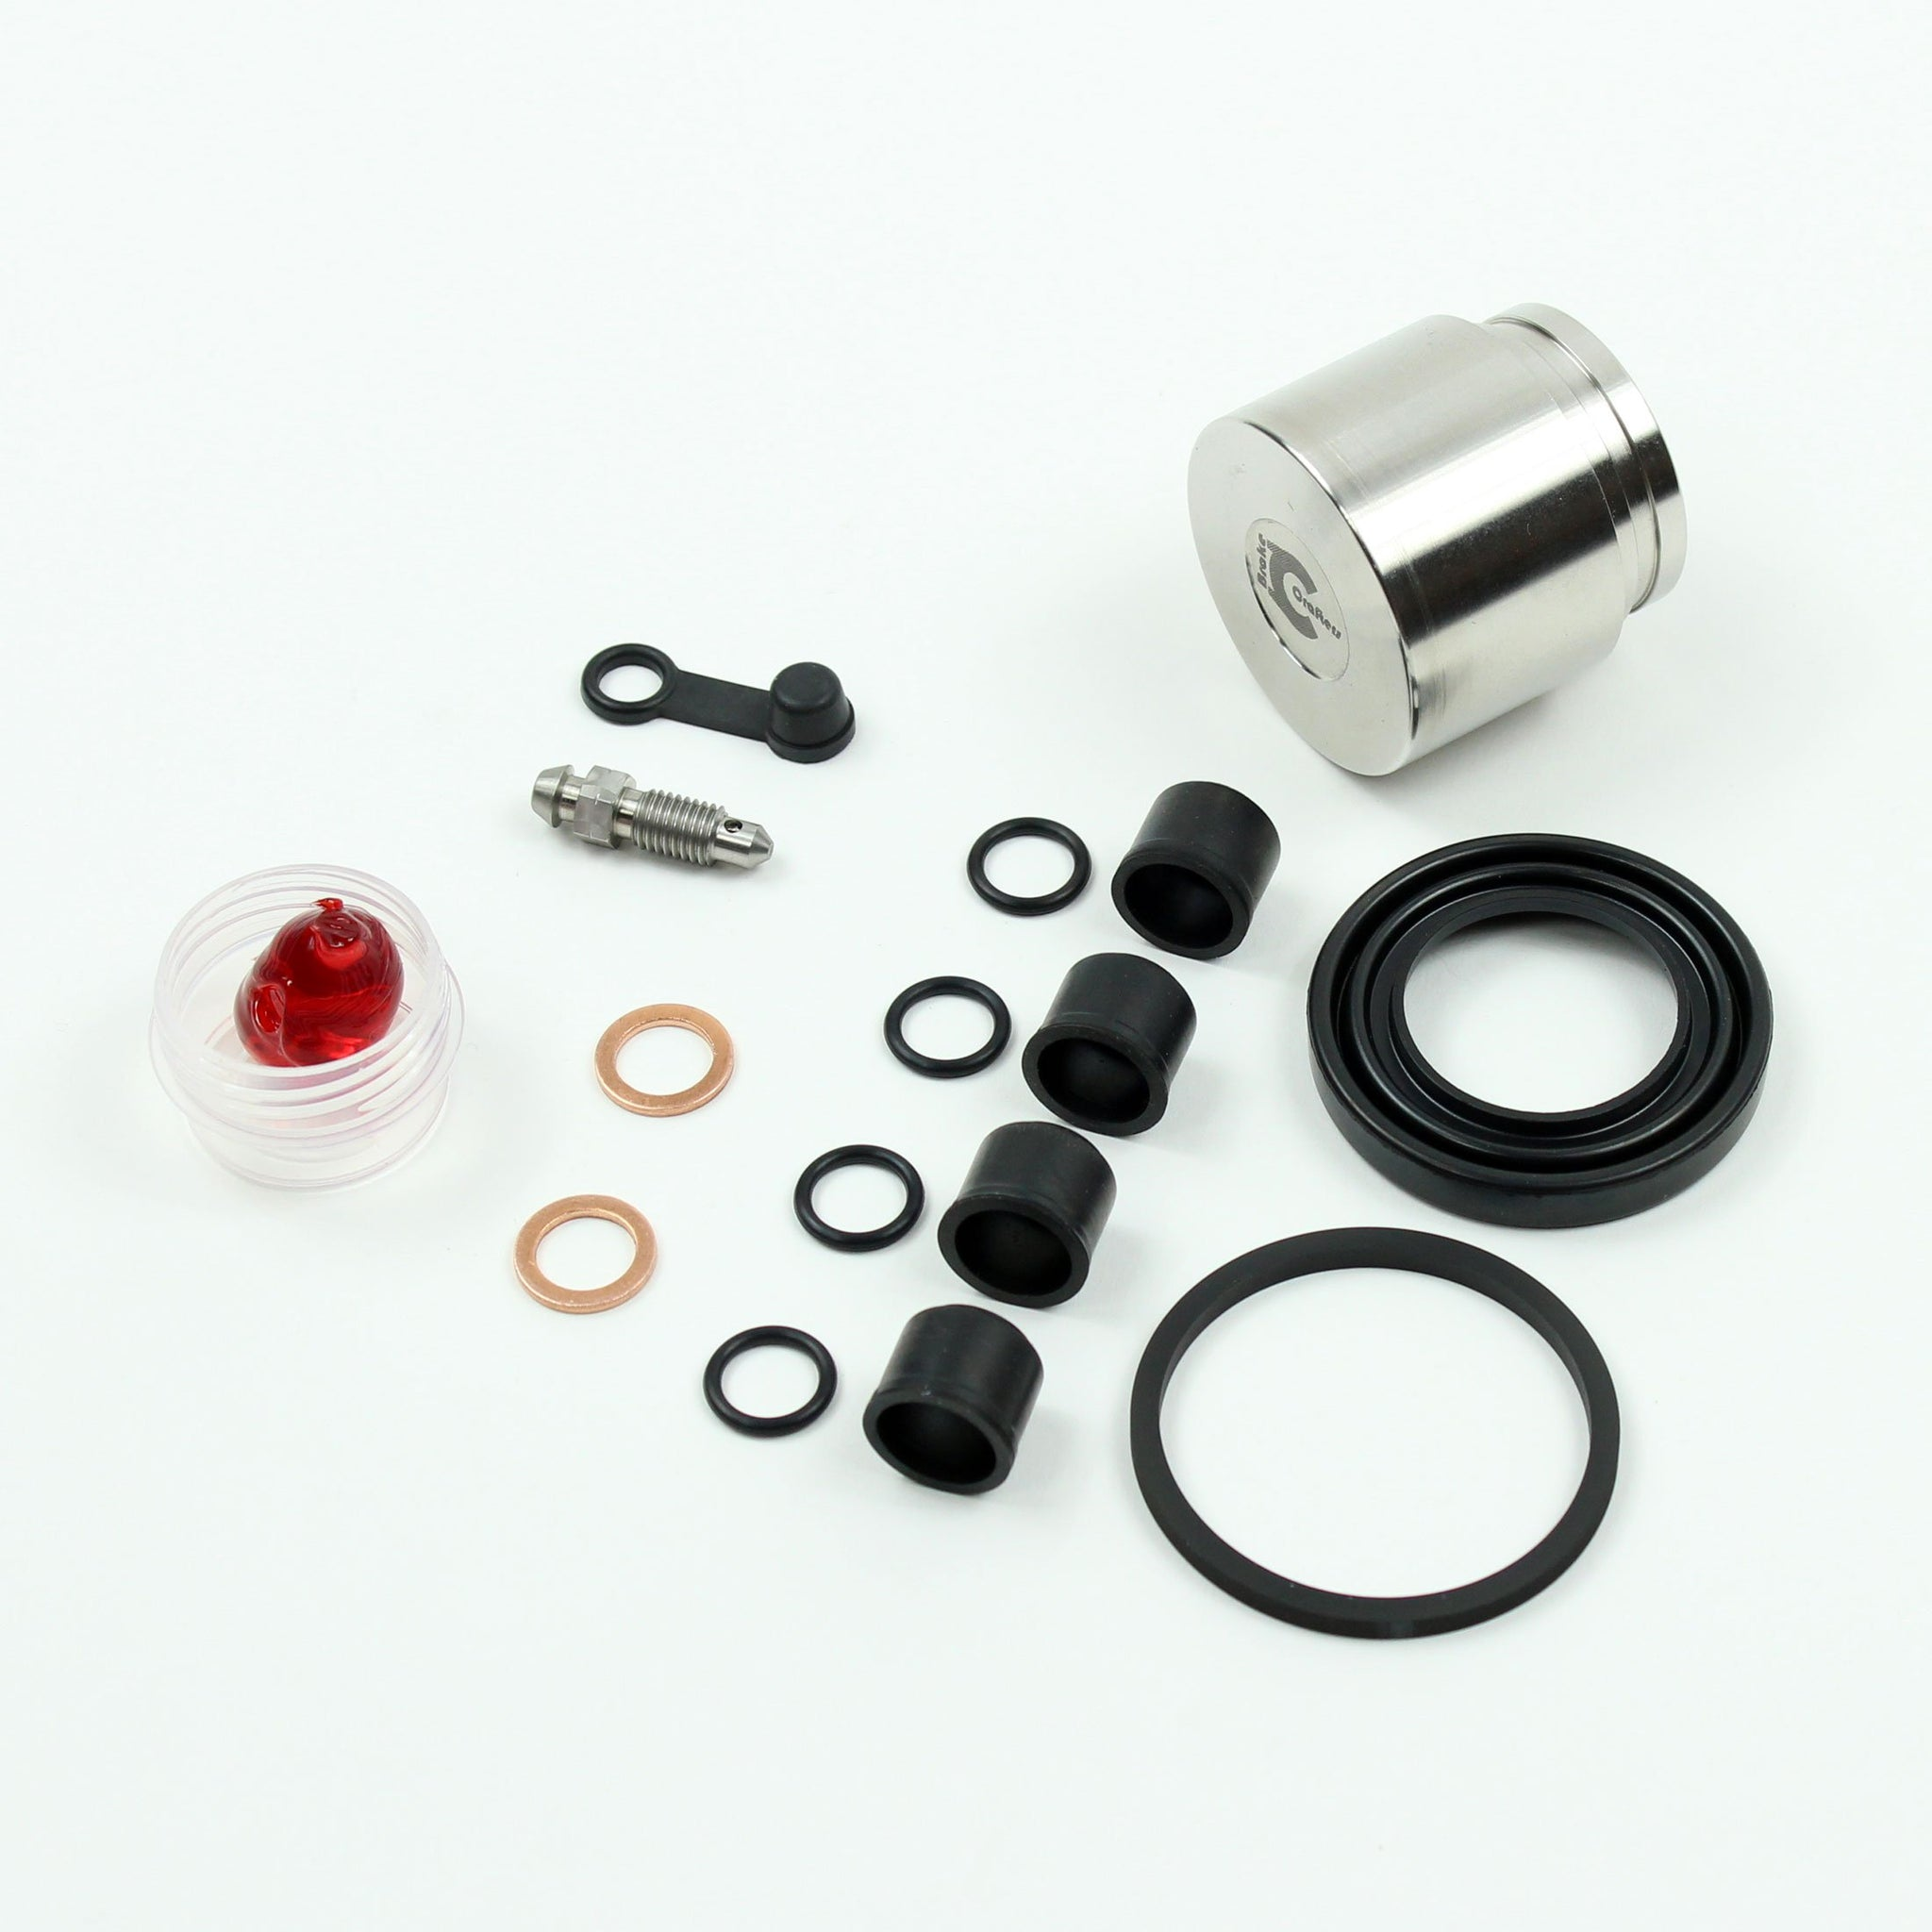 Brakecrafters Front Brake Caliper Rebuild Seal and Piston Kit BC22HP